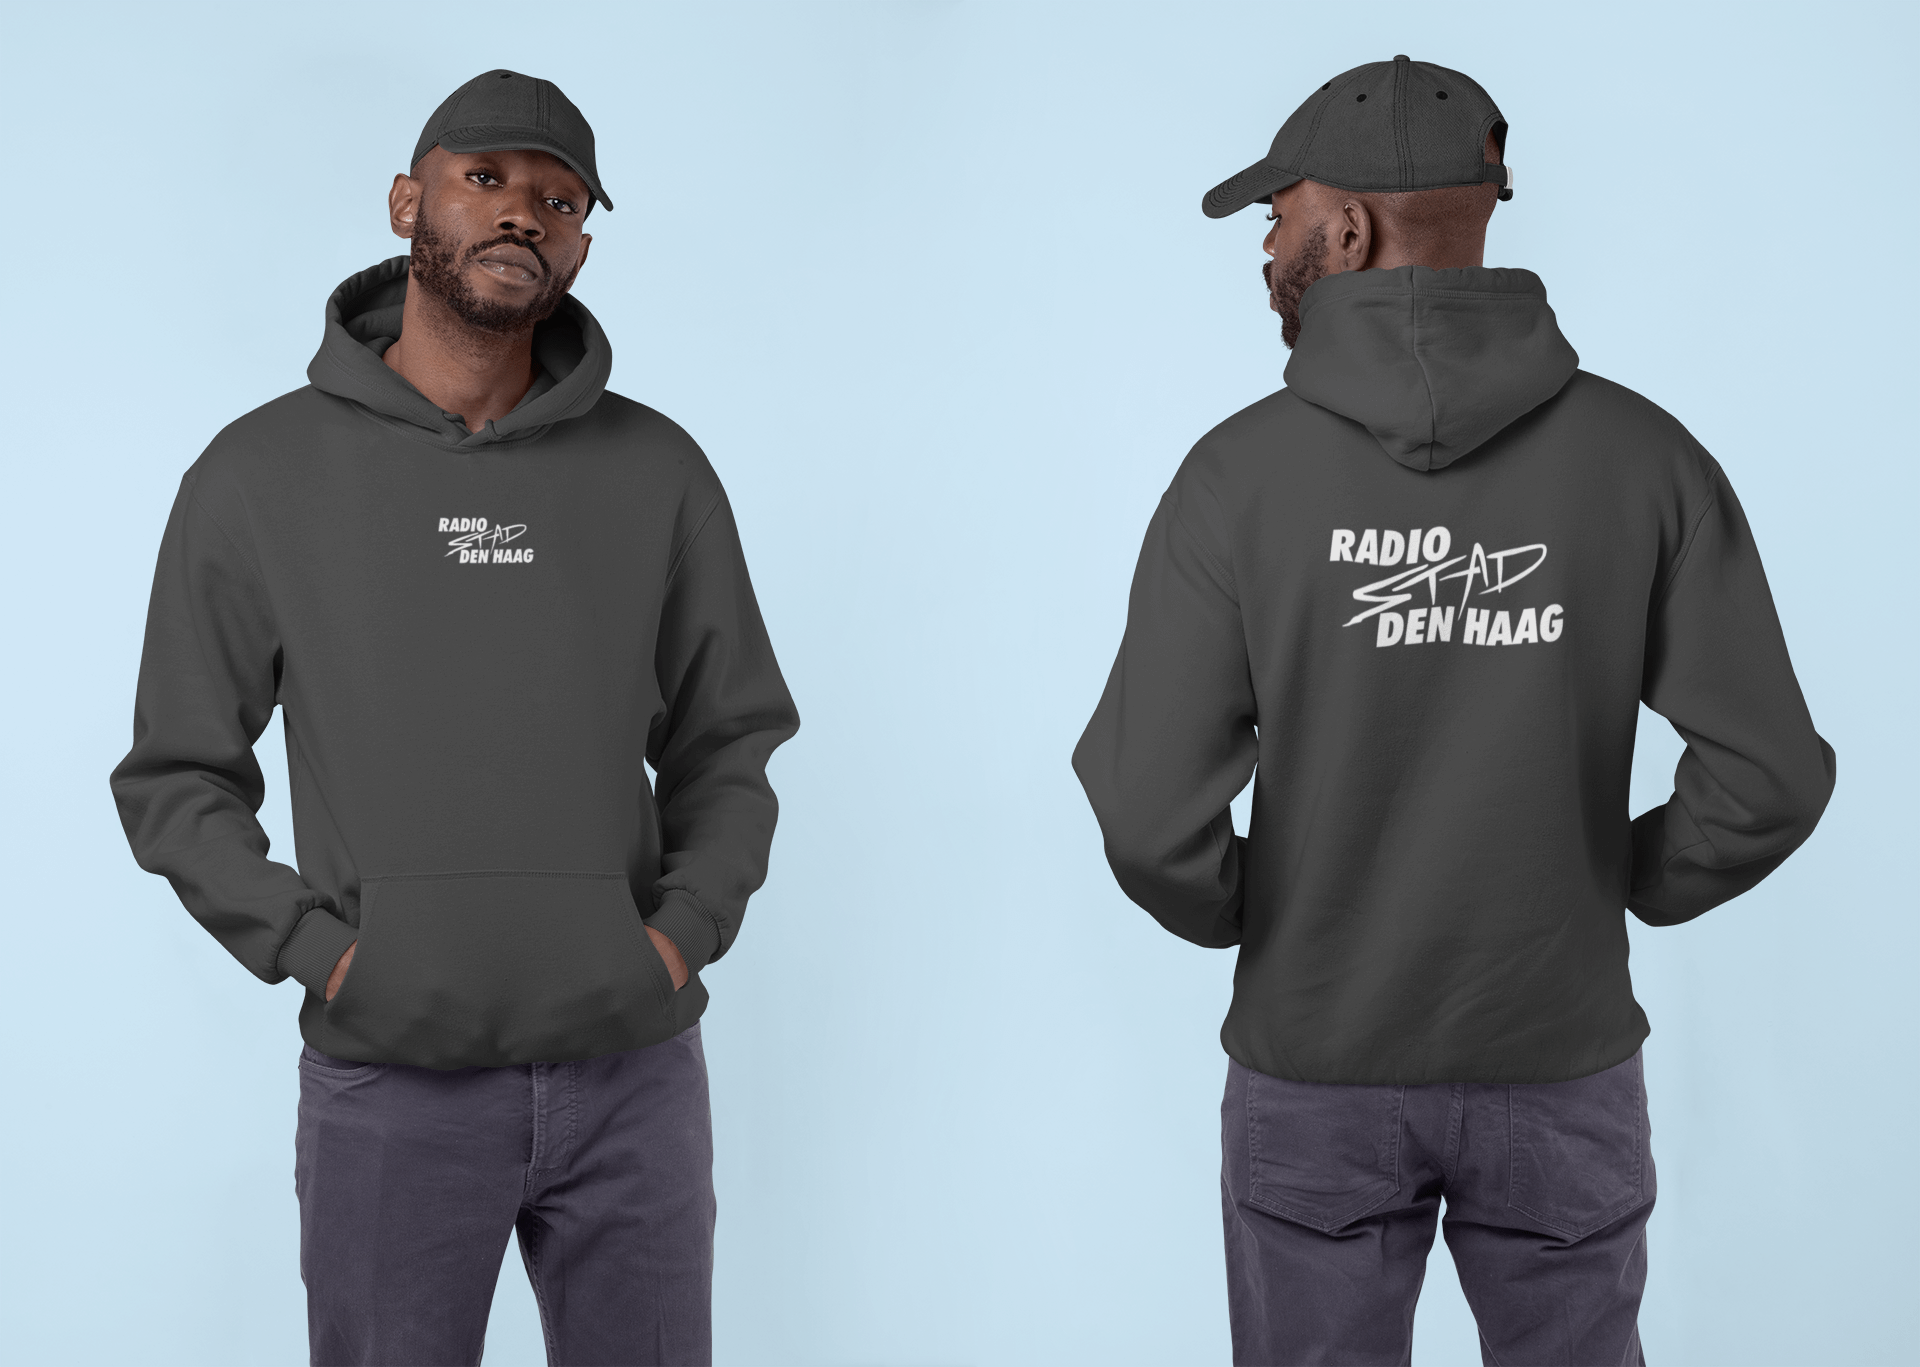 both-sides-hoodie-mockup-of-a-man-wearing-a-hat-in-a-studio-29642-1